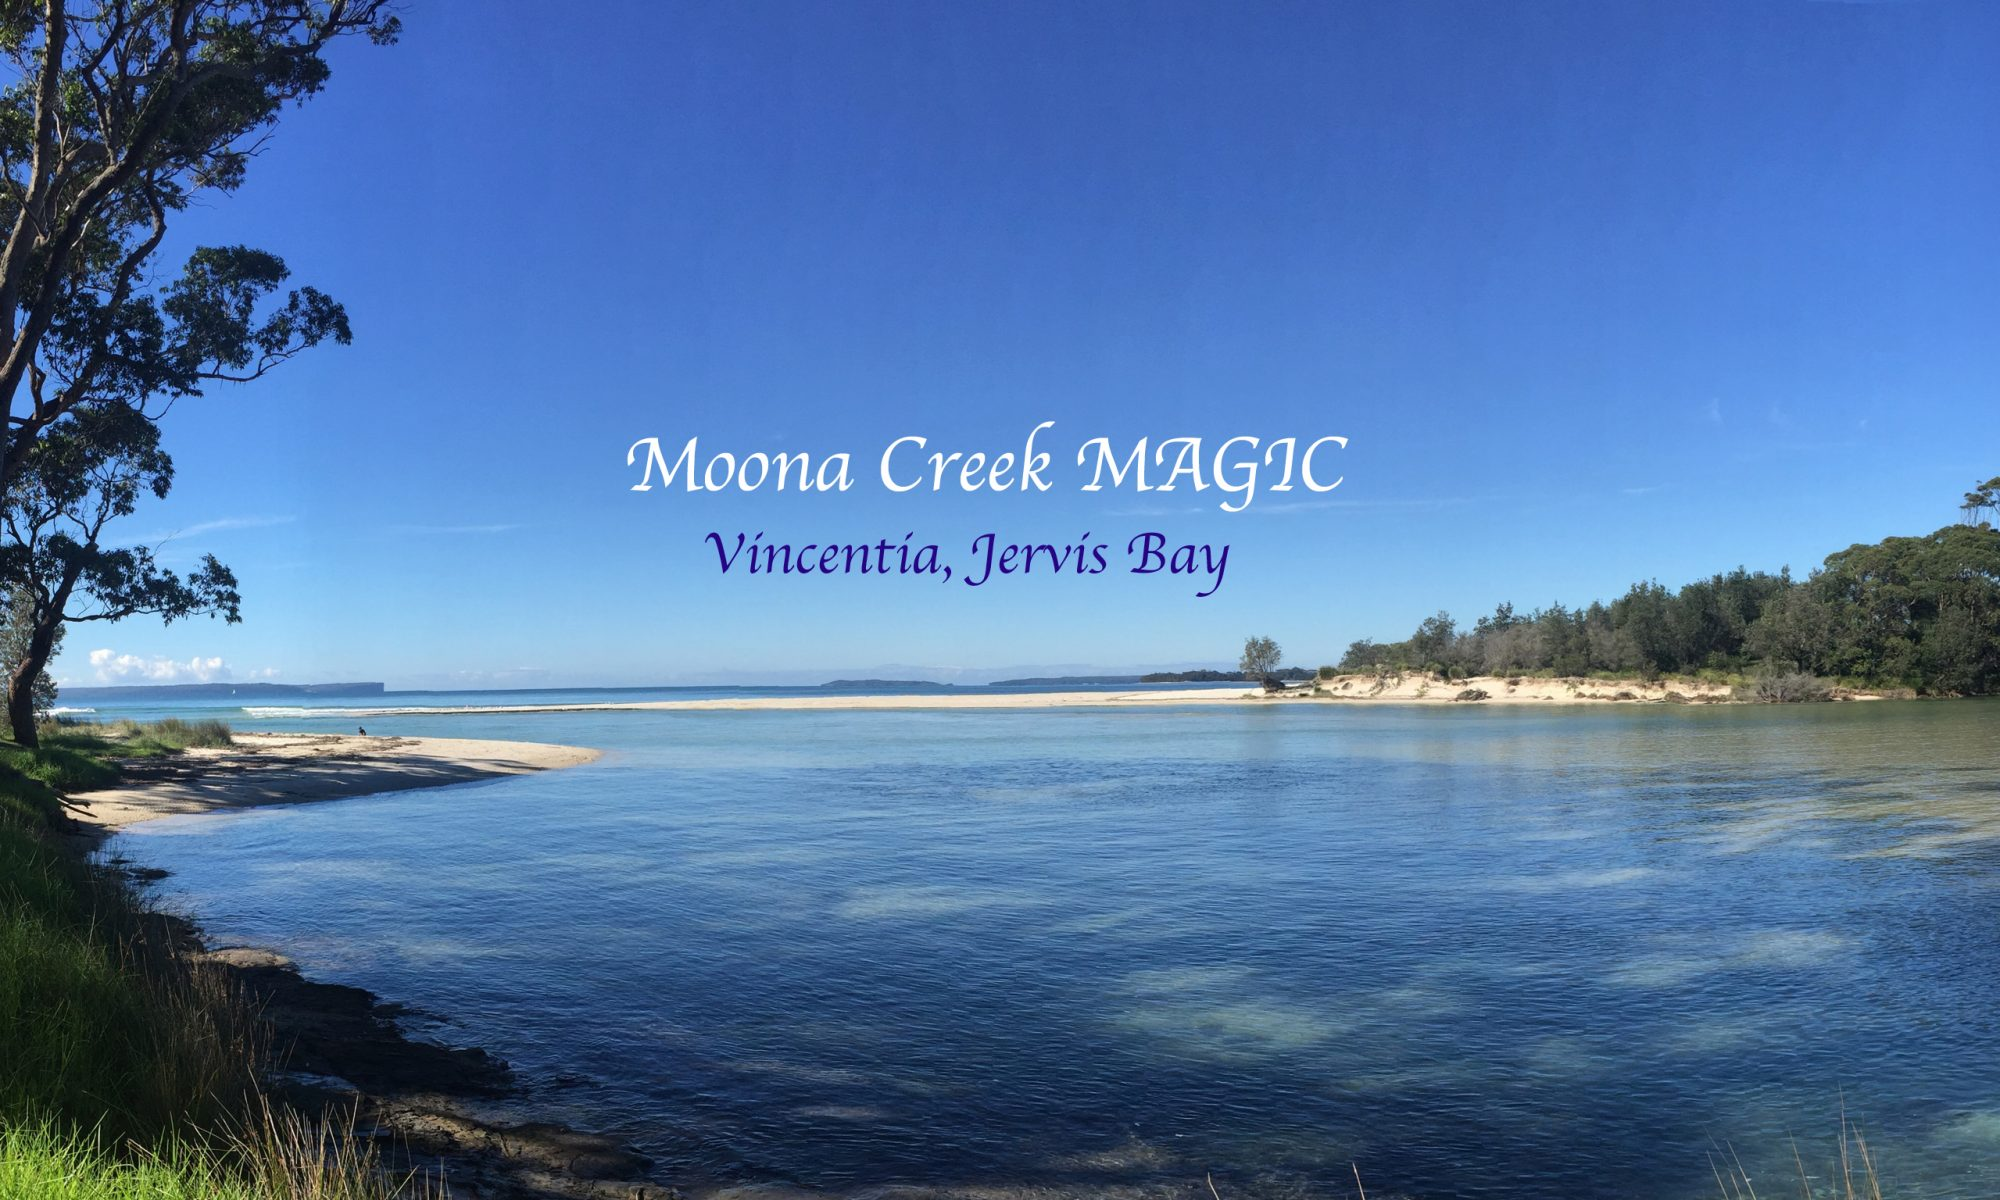 Moona Creek MAGIC